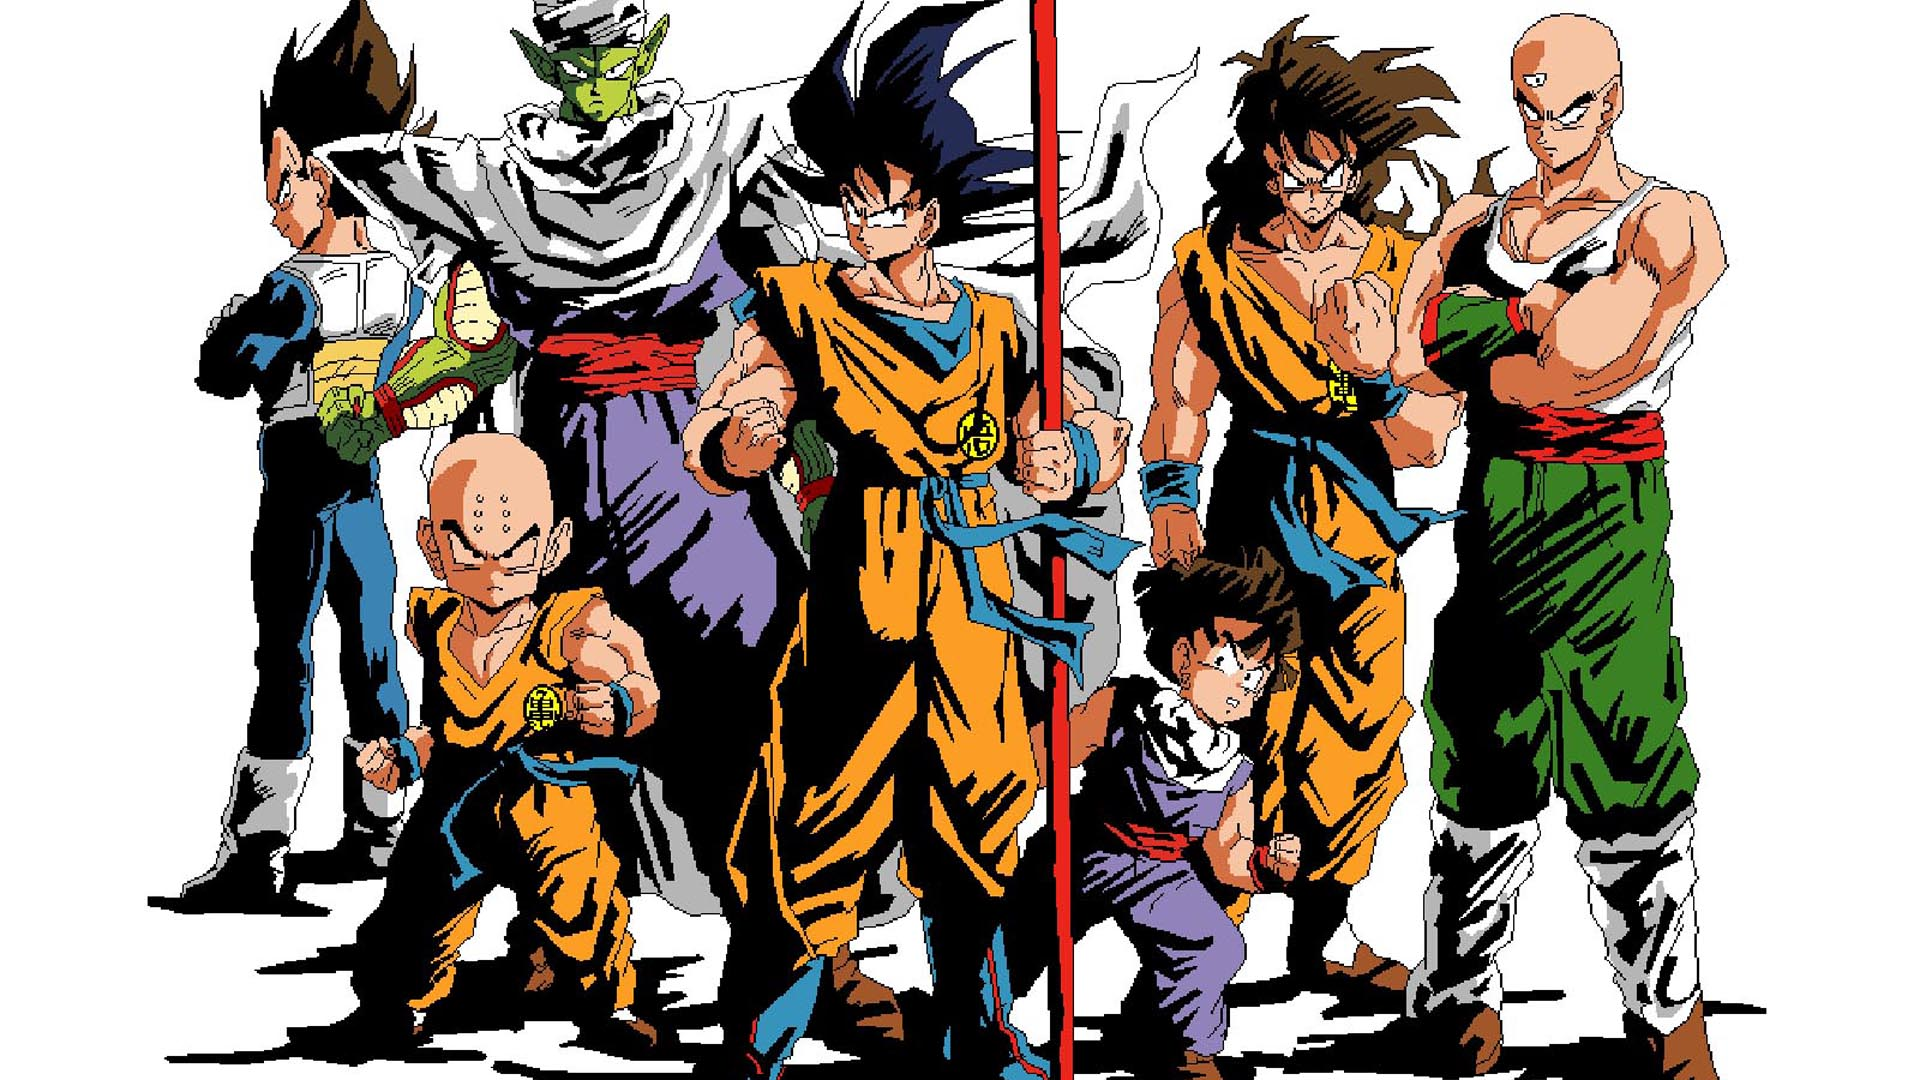 dragonball-1920×1080-wallpaper-wp3605216